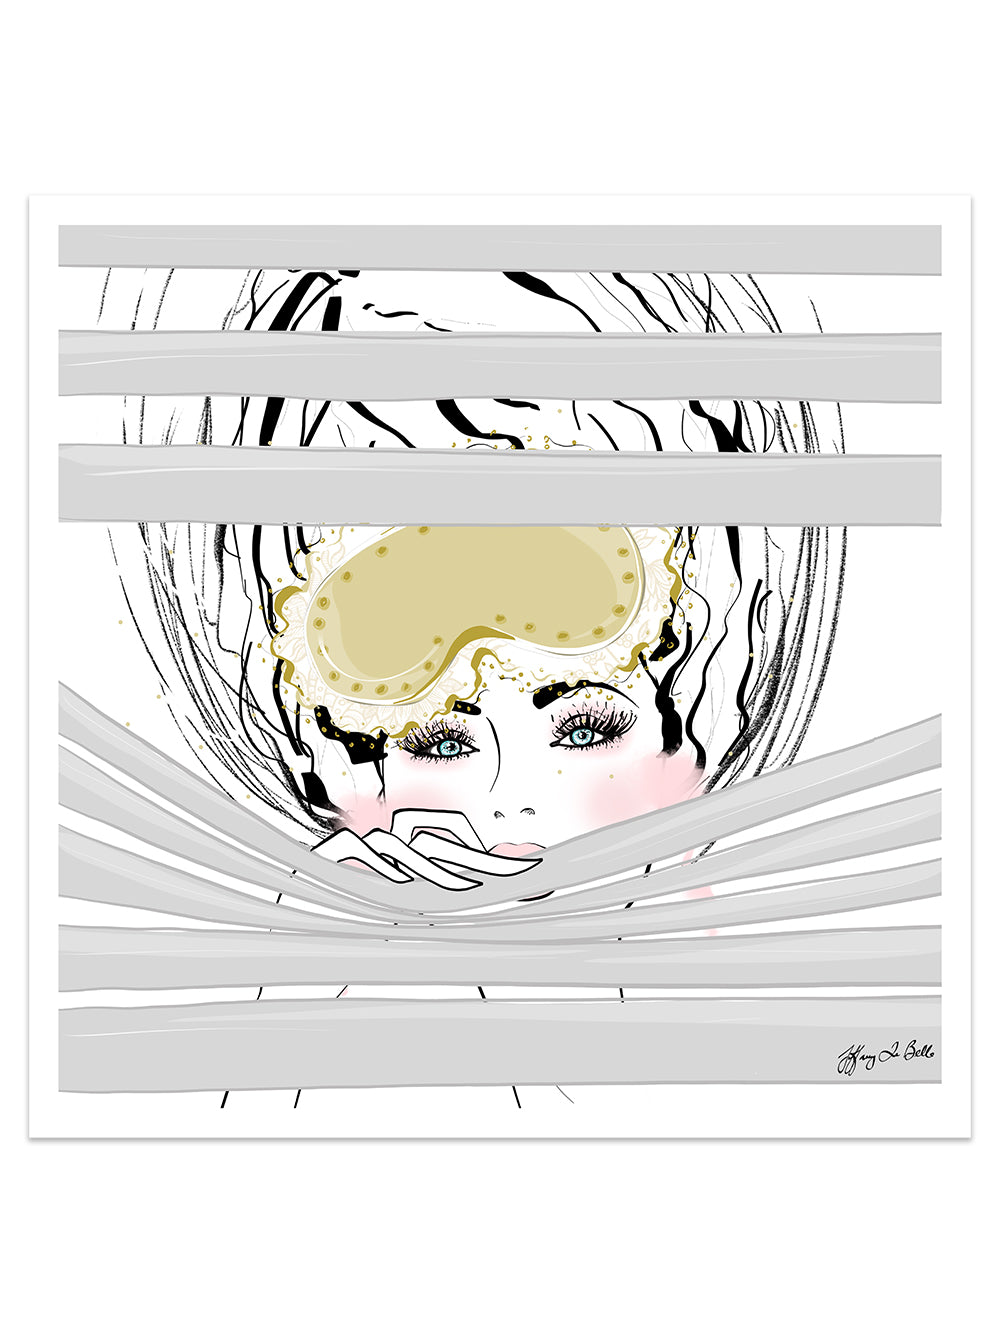 Good Morning - Illustration - Limited Edition Print - Tiffany La Belle